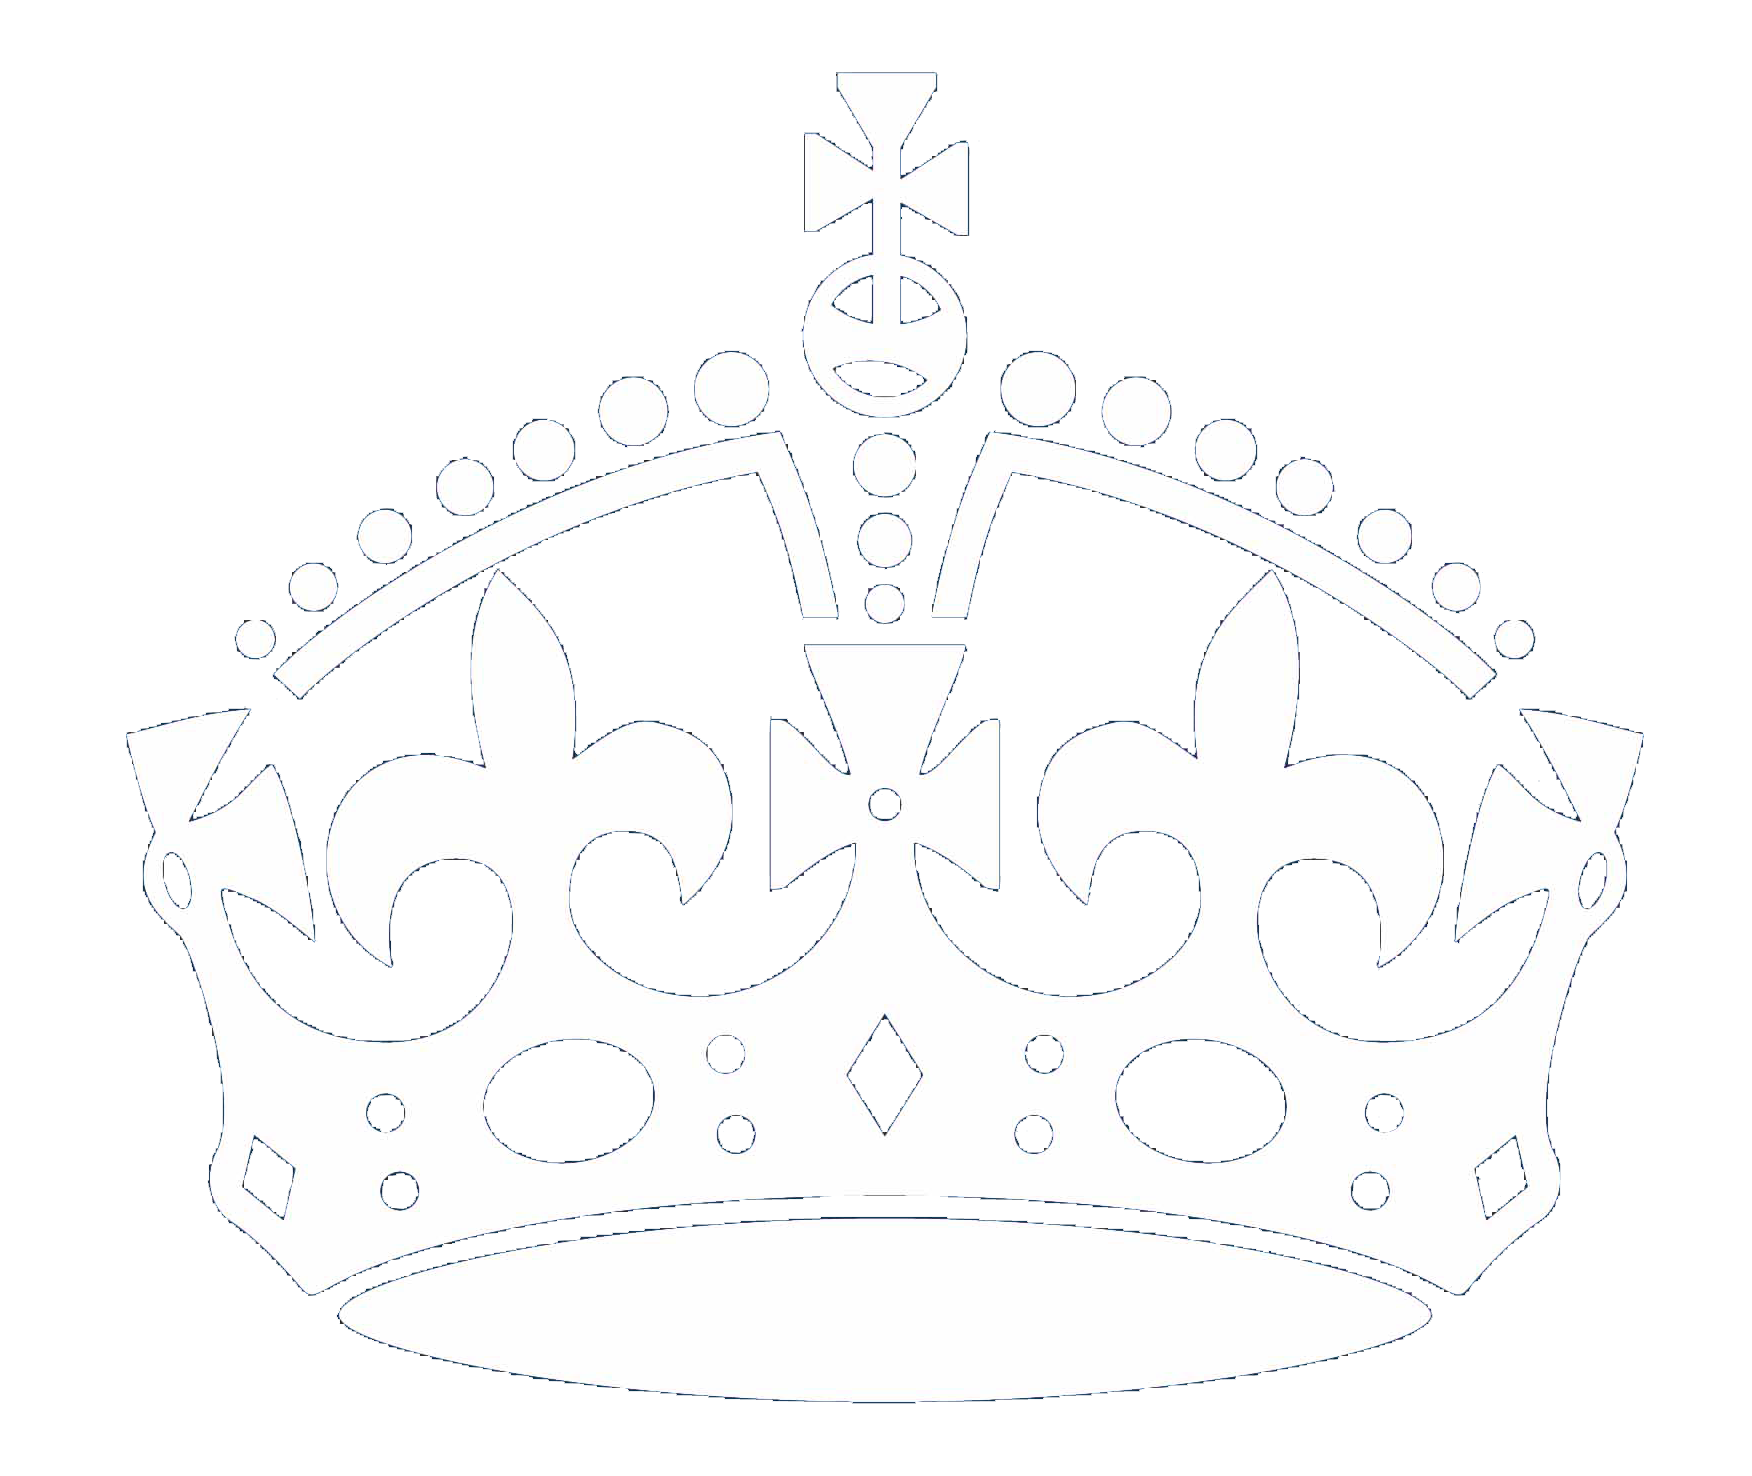 Free keep crown download. Calm clipart black and white